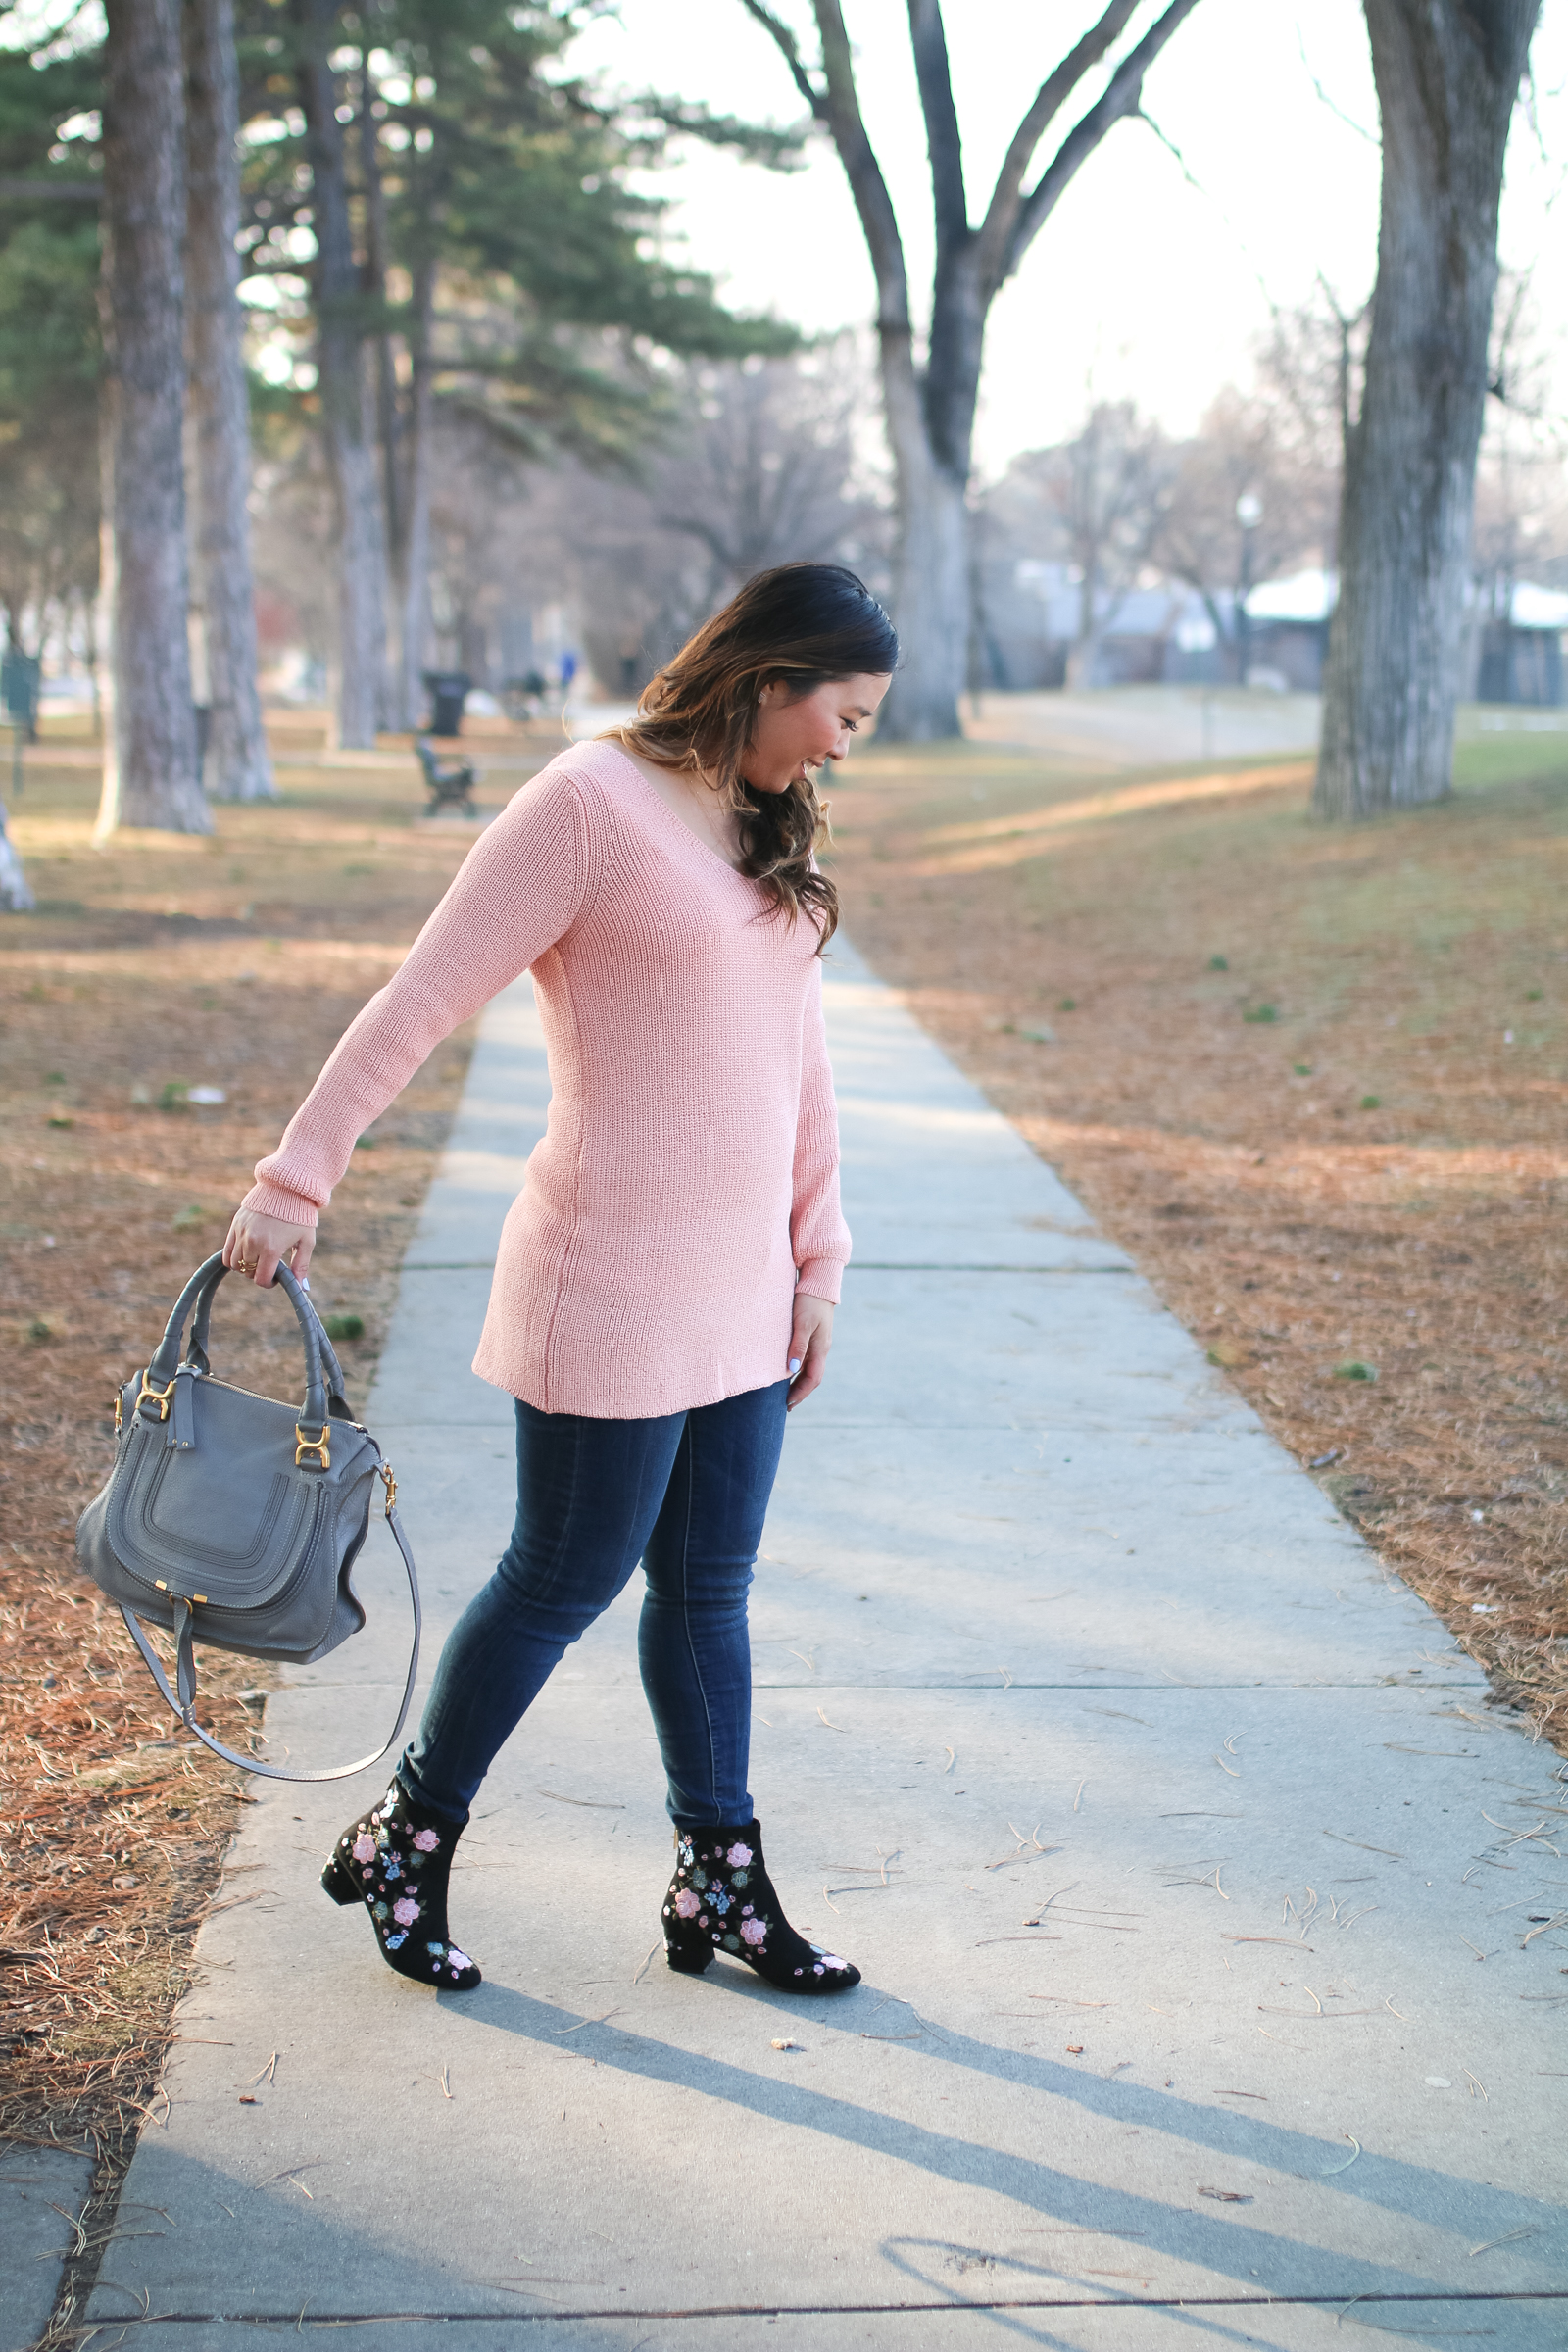 How to wear floral booties and a lace up sweater